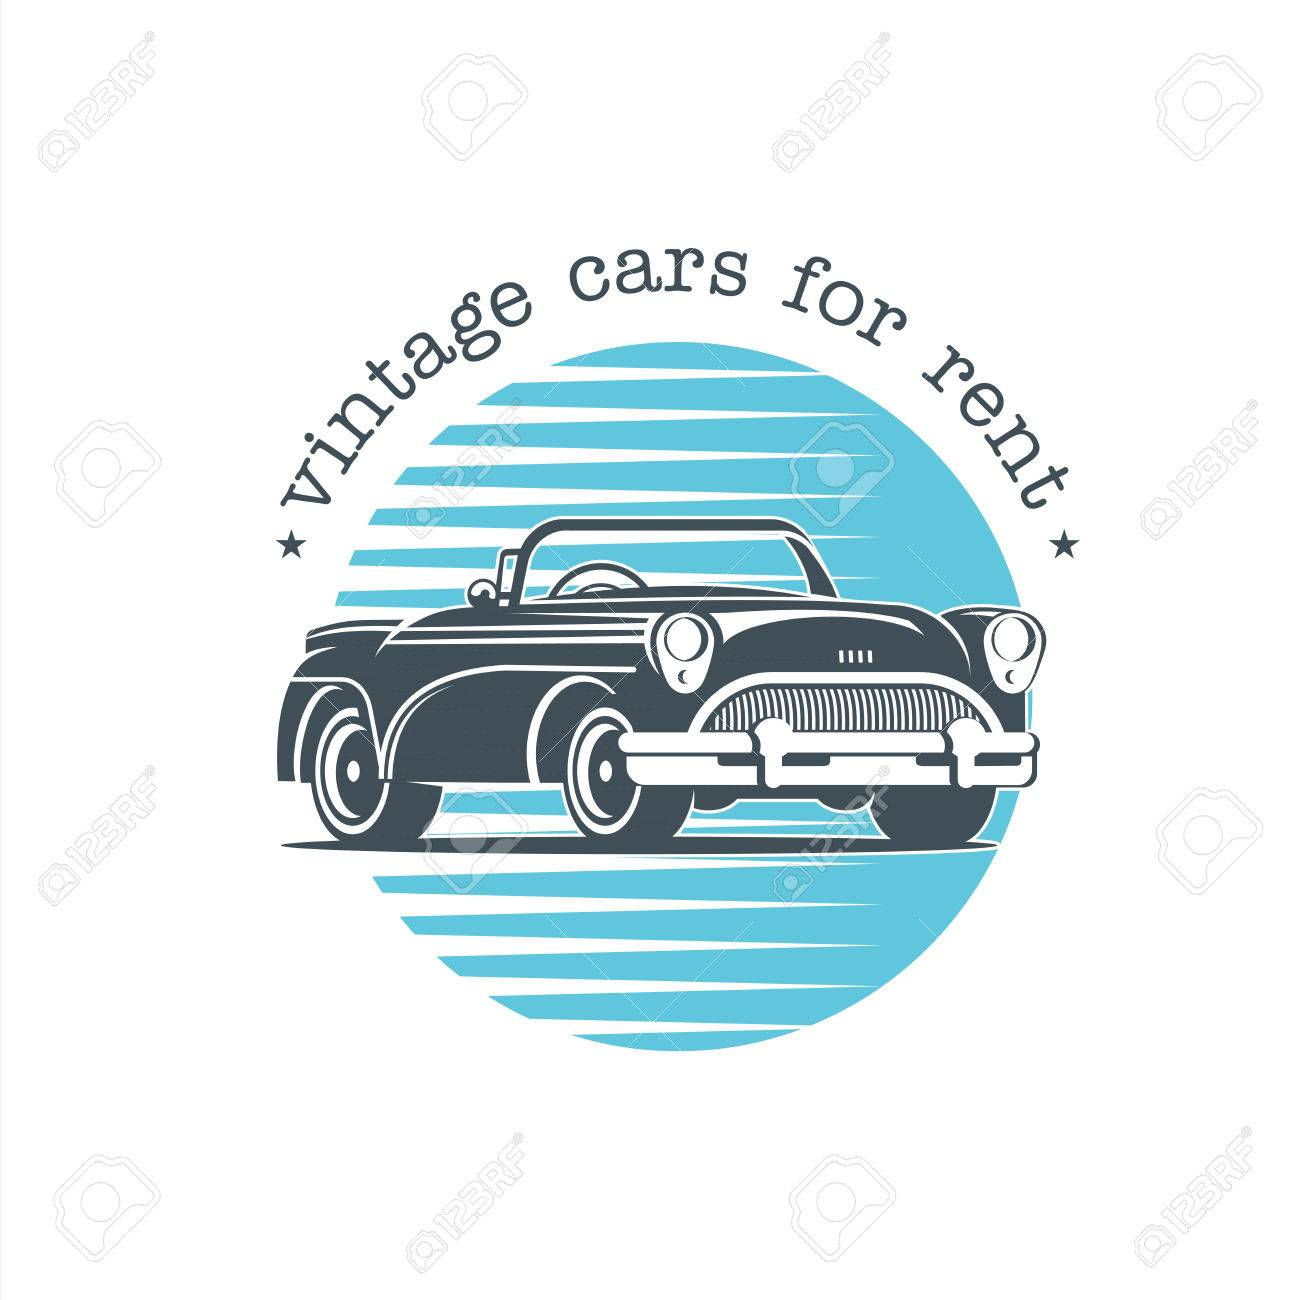 Vintage Car. Vector Badge, Logo, Retro Cars For Rent. Royalty Free ...